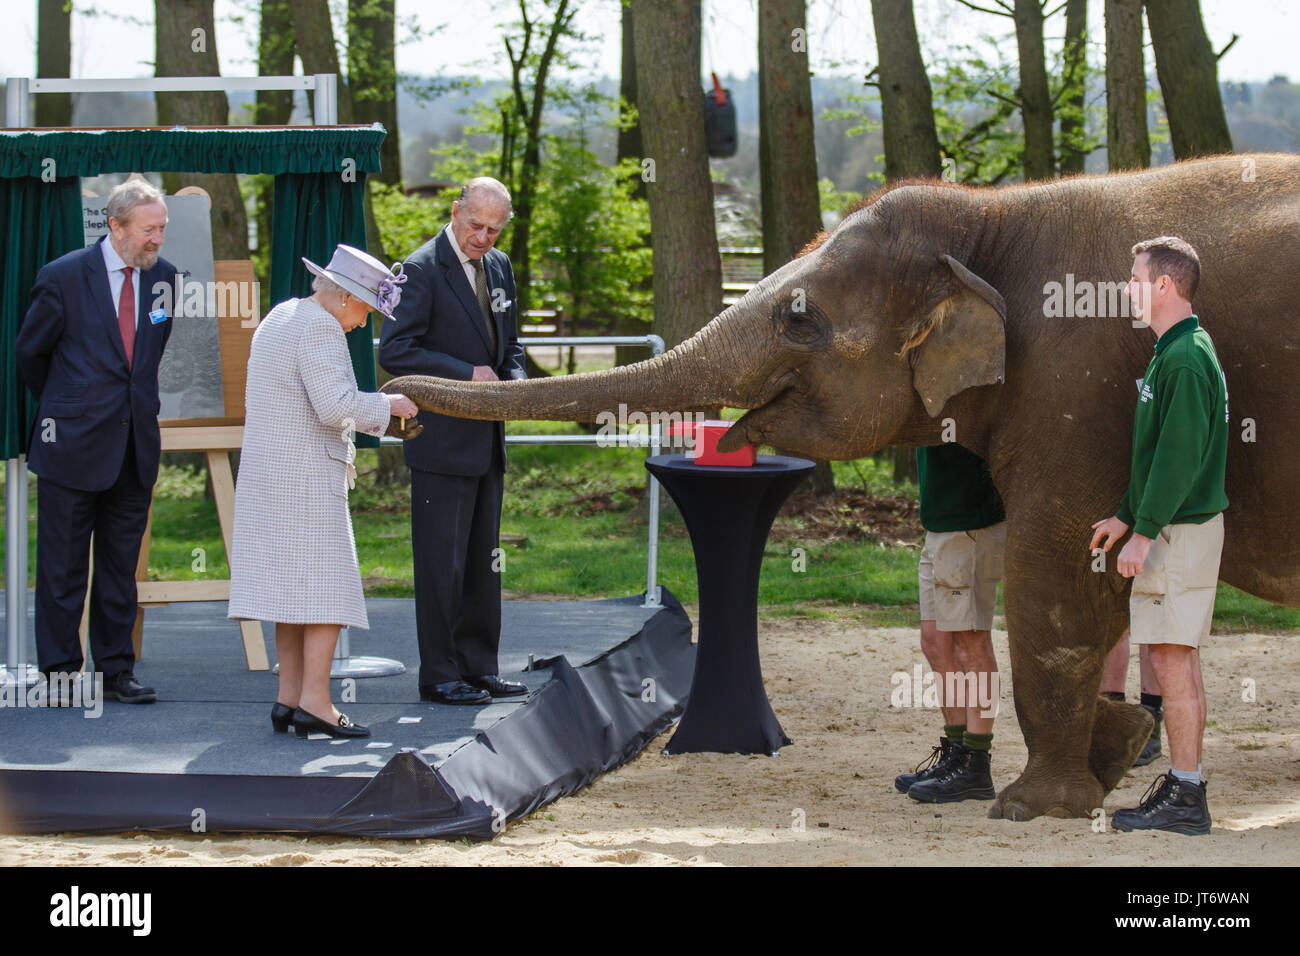 The Queen Helps Feed Elephants at Whipsnade Zoo The Queen Helps Feed Elephants at Whipsnade Zoo new picture